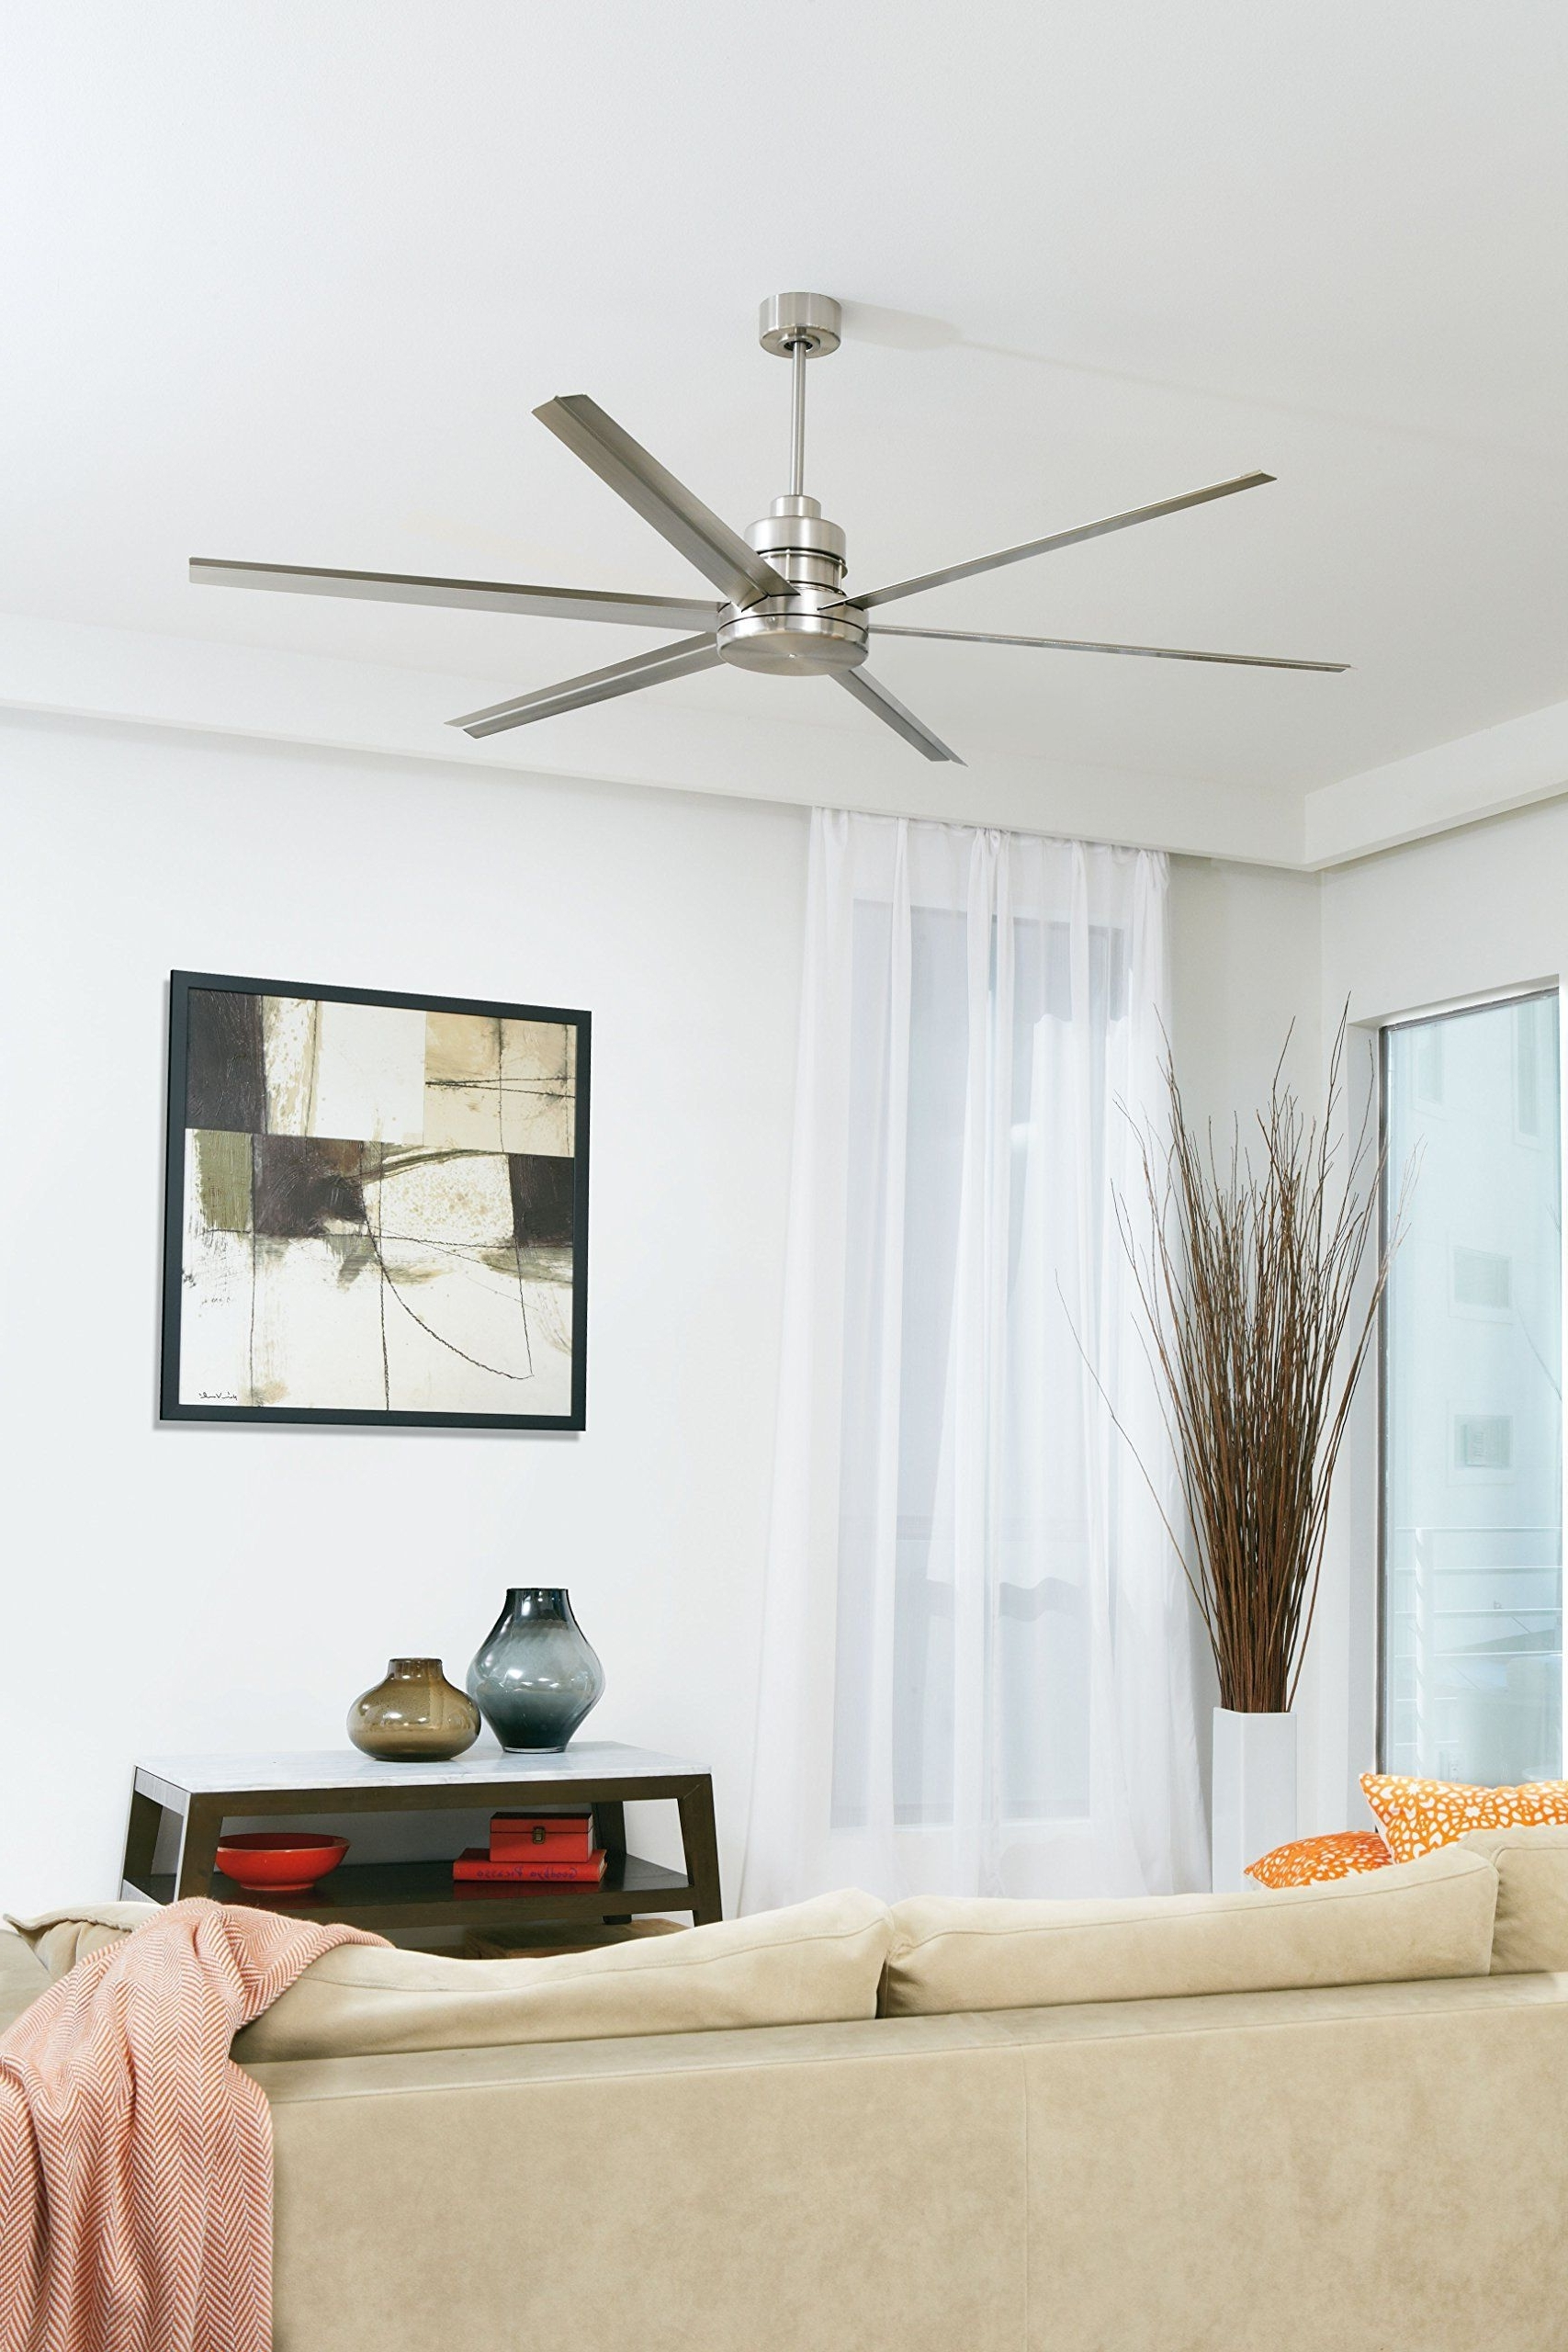 72 Inch Outdoor Ceiling Fans With Light Throughout Most Recent Craftmade Mnd72esp6 Mondo 72 Inch Espresso Six Blade Metal Outdoor (View 19 of 20)